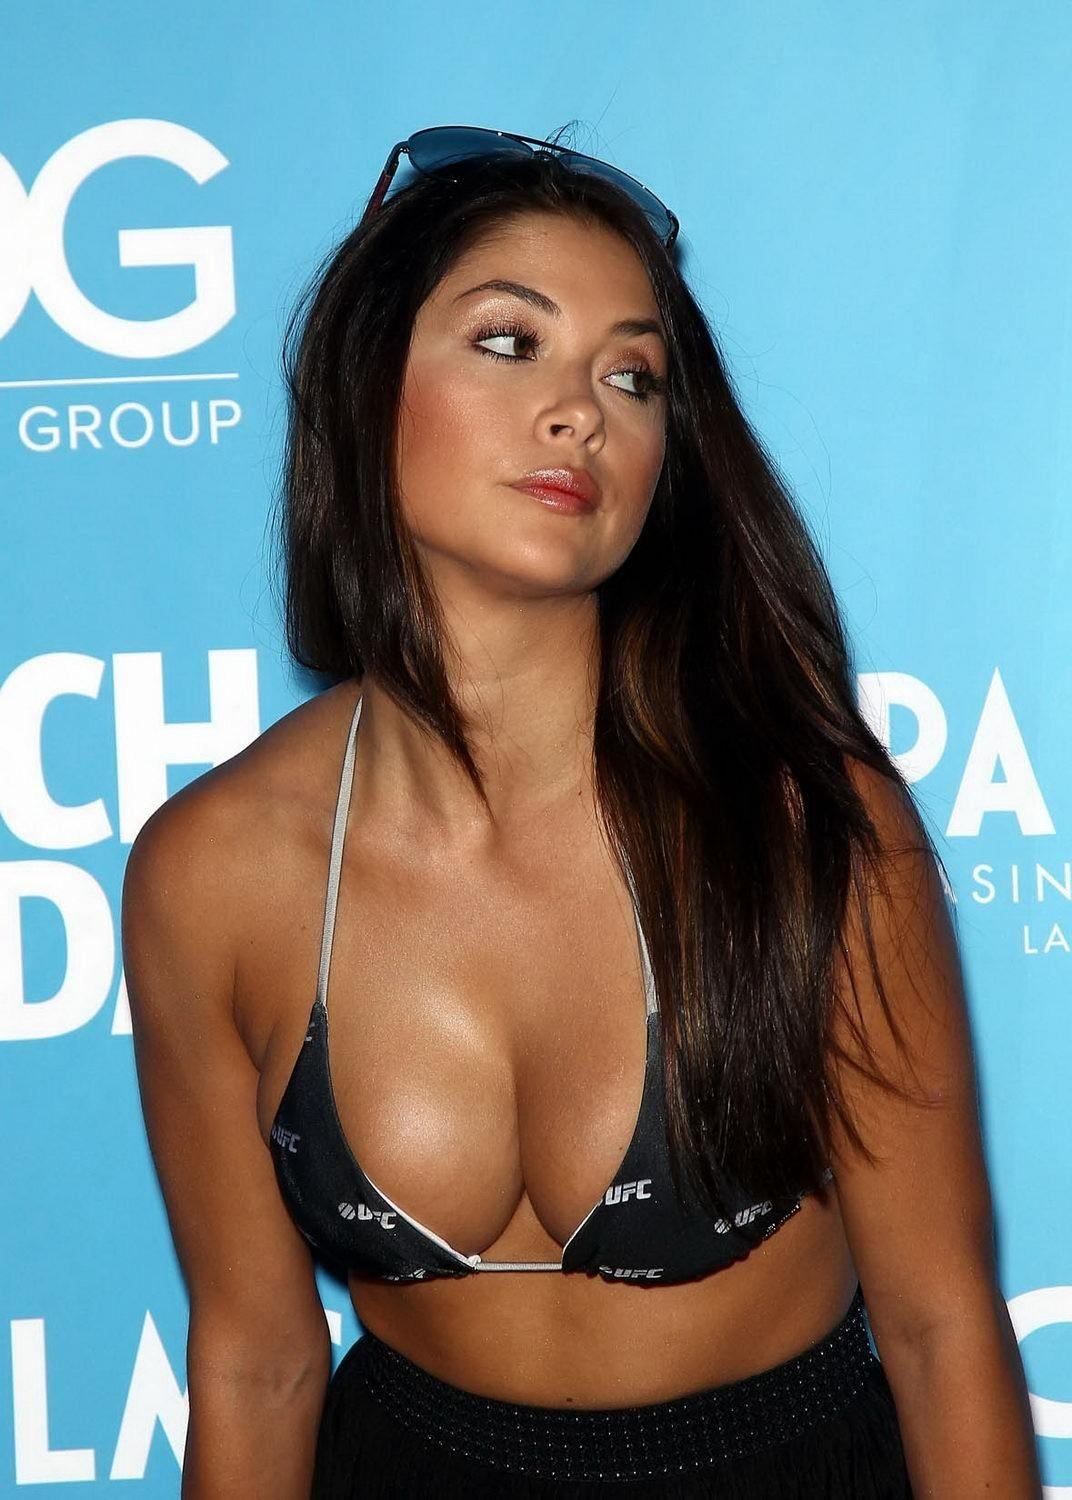 Arianny Celeste Looking Hot In Bikini Top Ufc Fight Week Party In Las Vegas Hot